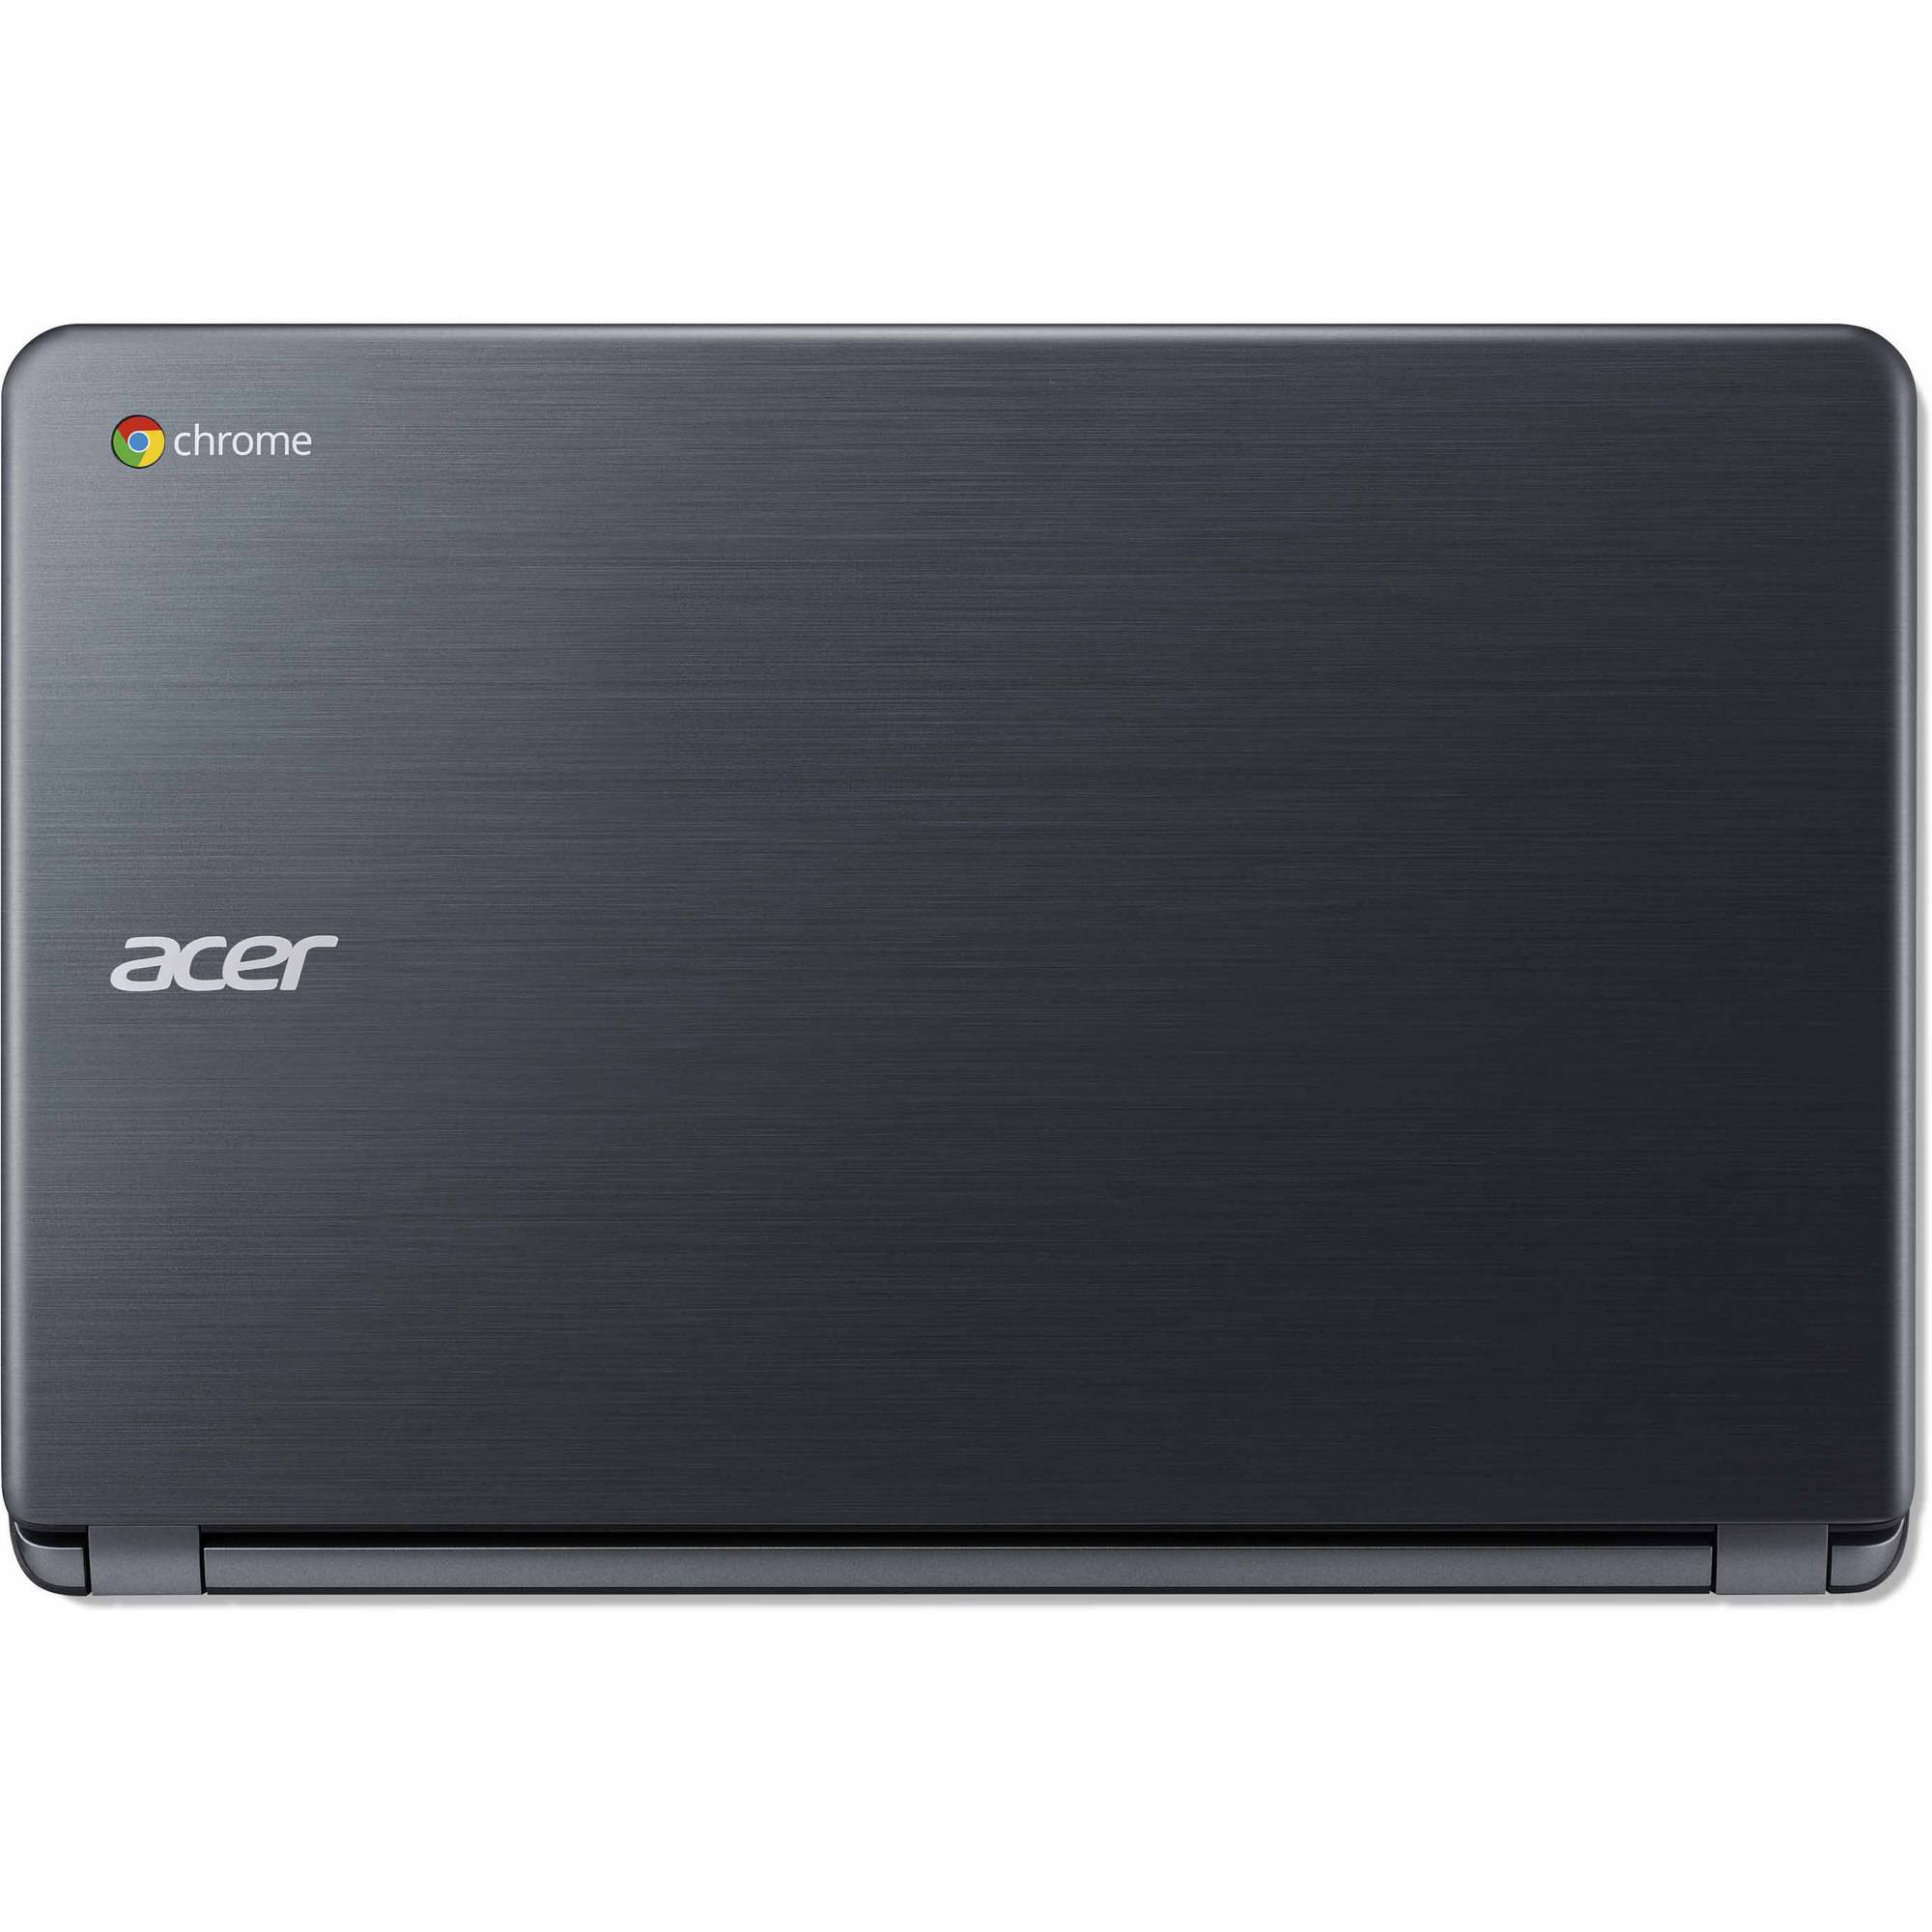 Acer 15 6 Chromebook 2 16ghz 2gb 16gb Chrome Os Cb3 531 C4a5